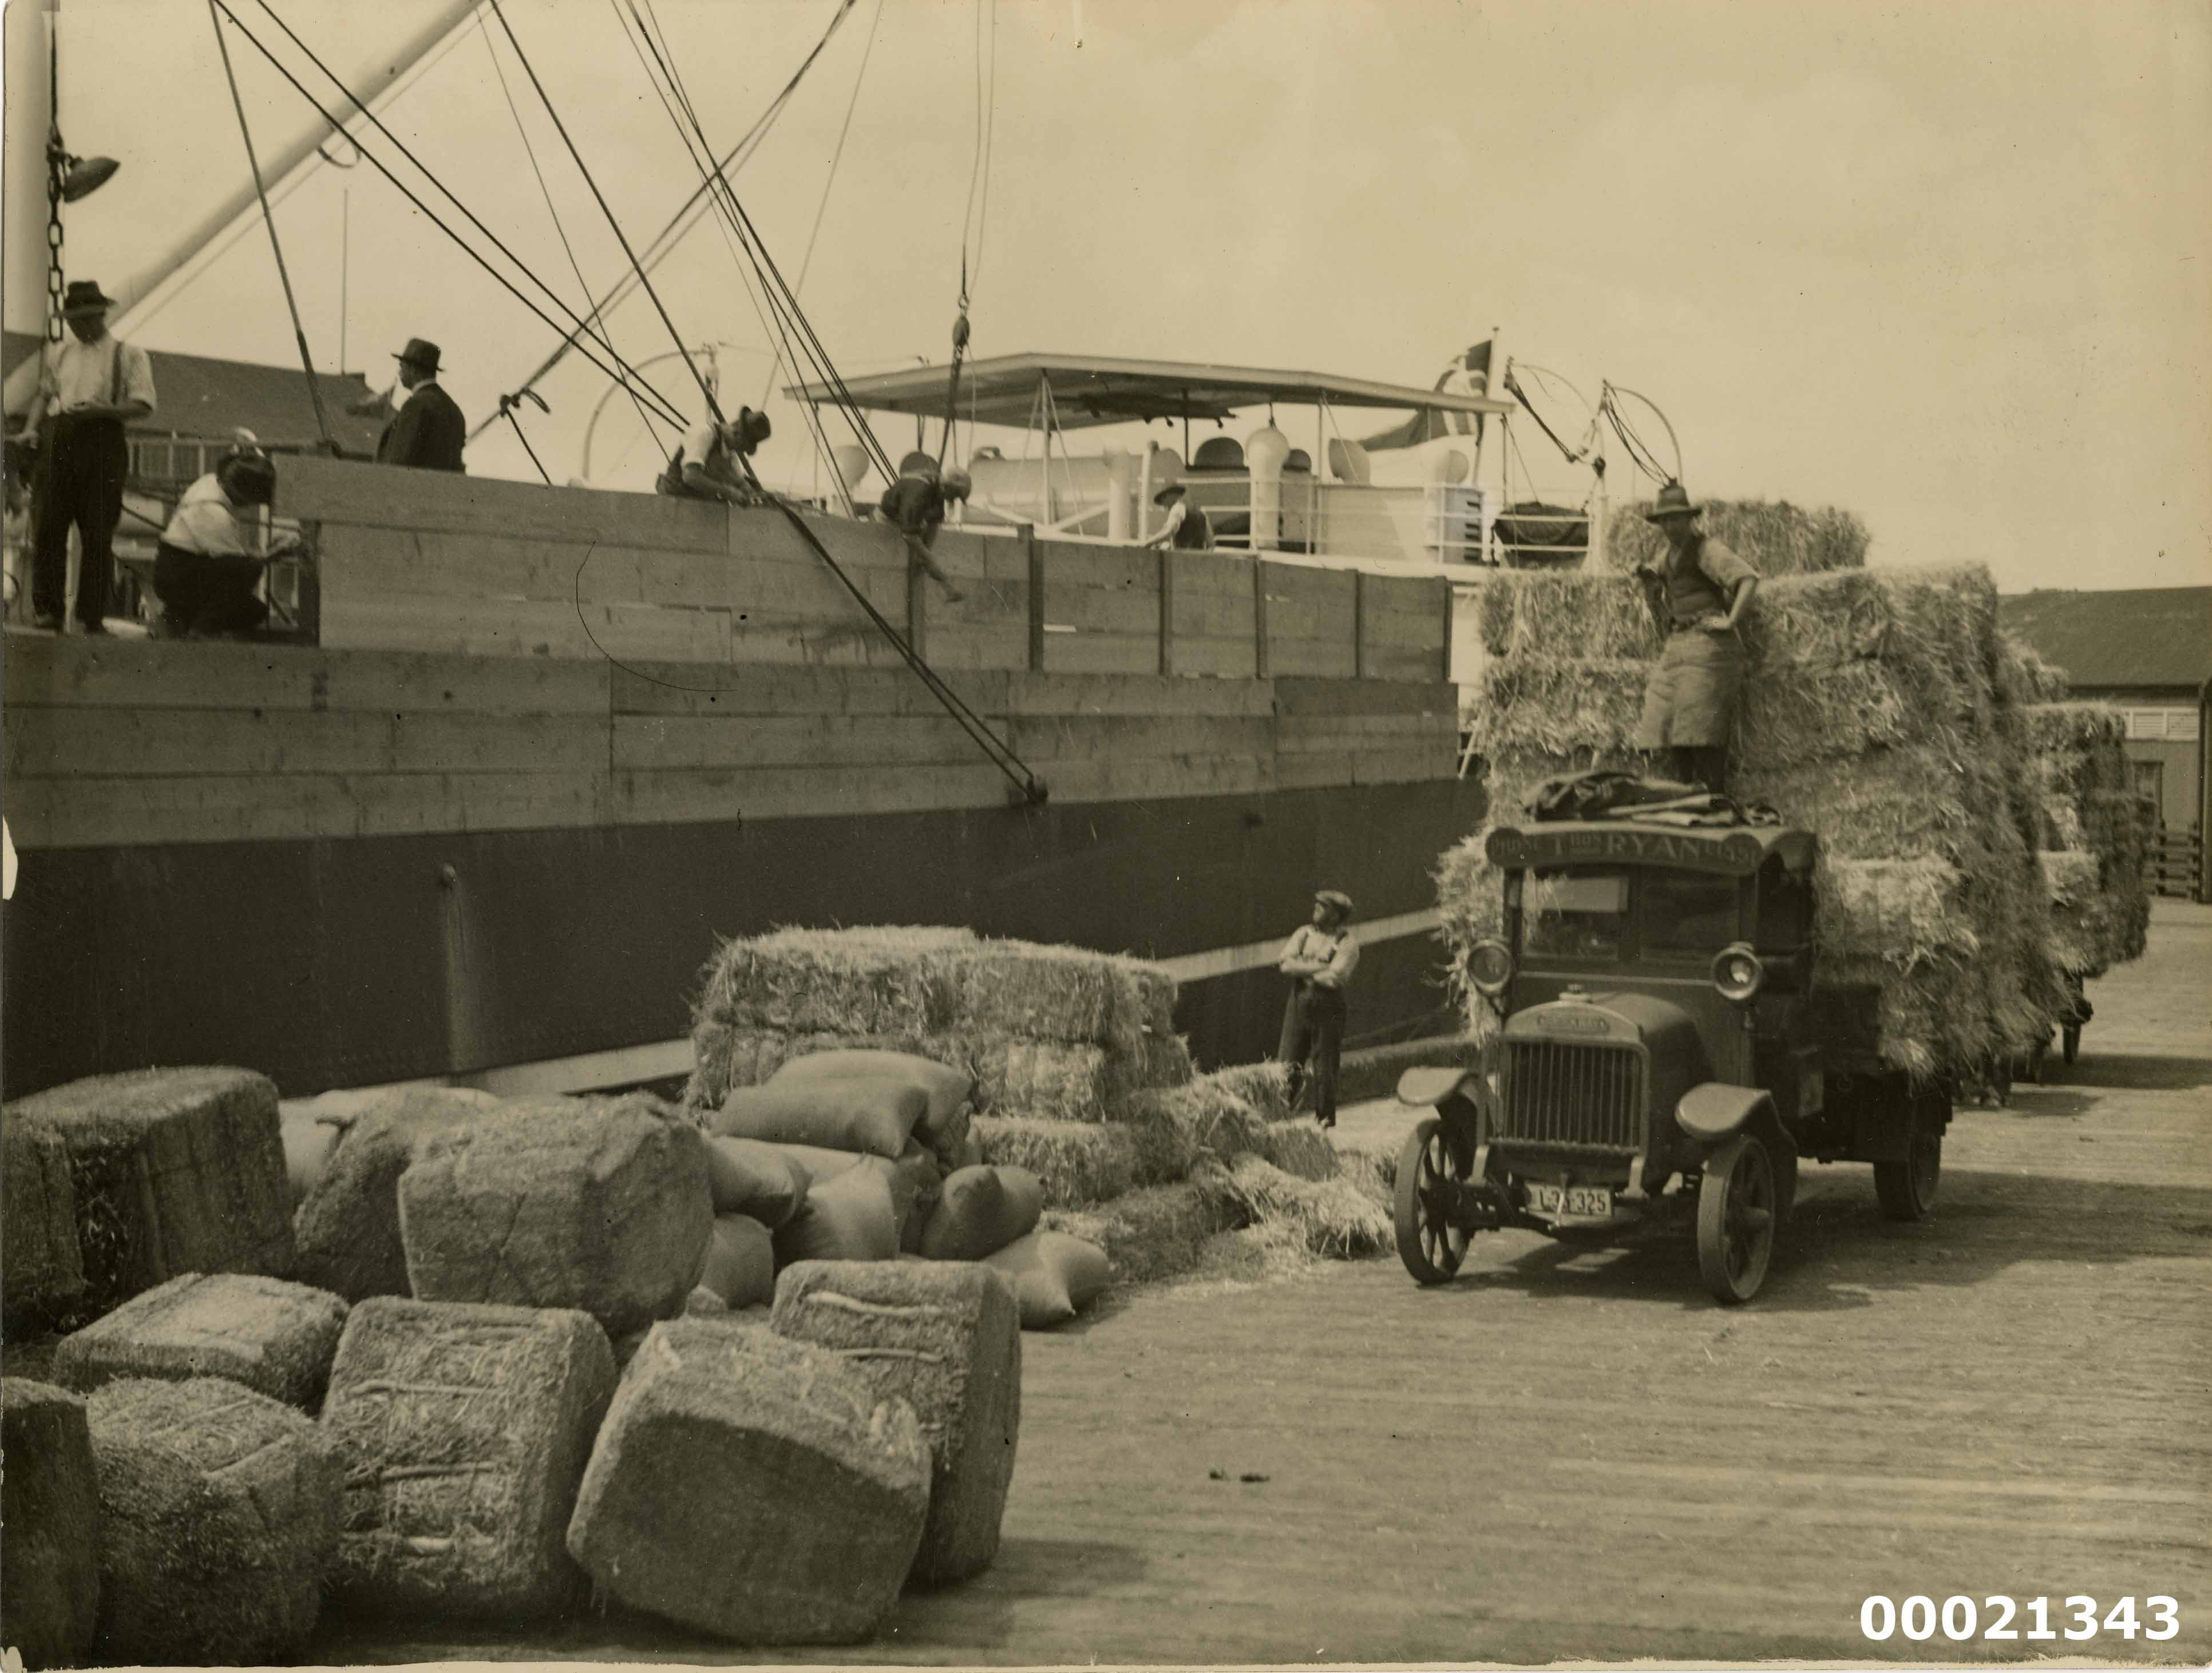 Loading bales of hay possibly on a Norwegian merchant vessel at Woolloomooloo Bay in Sydney